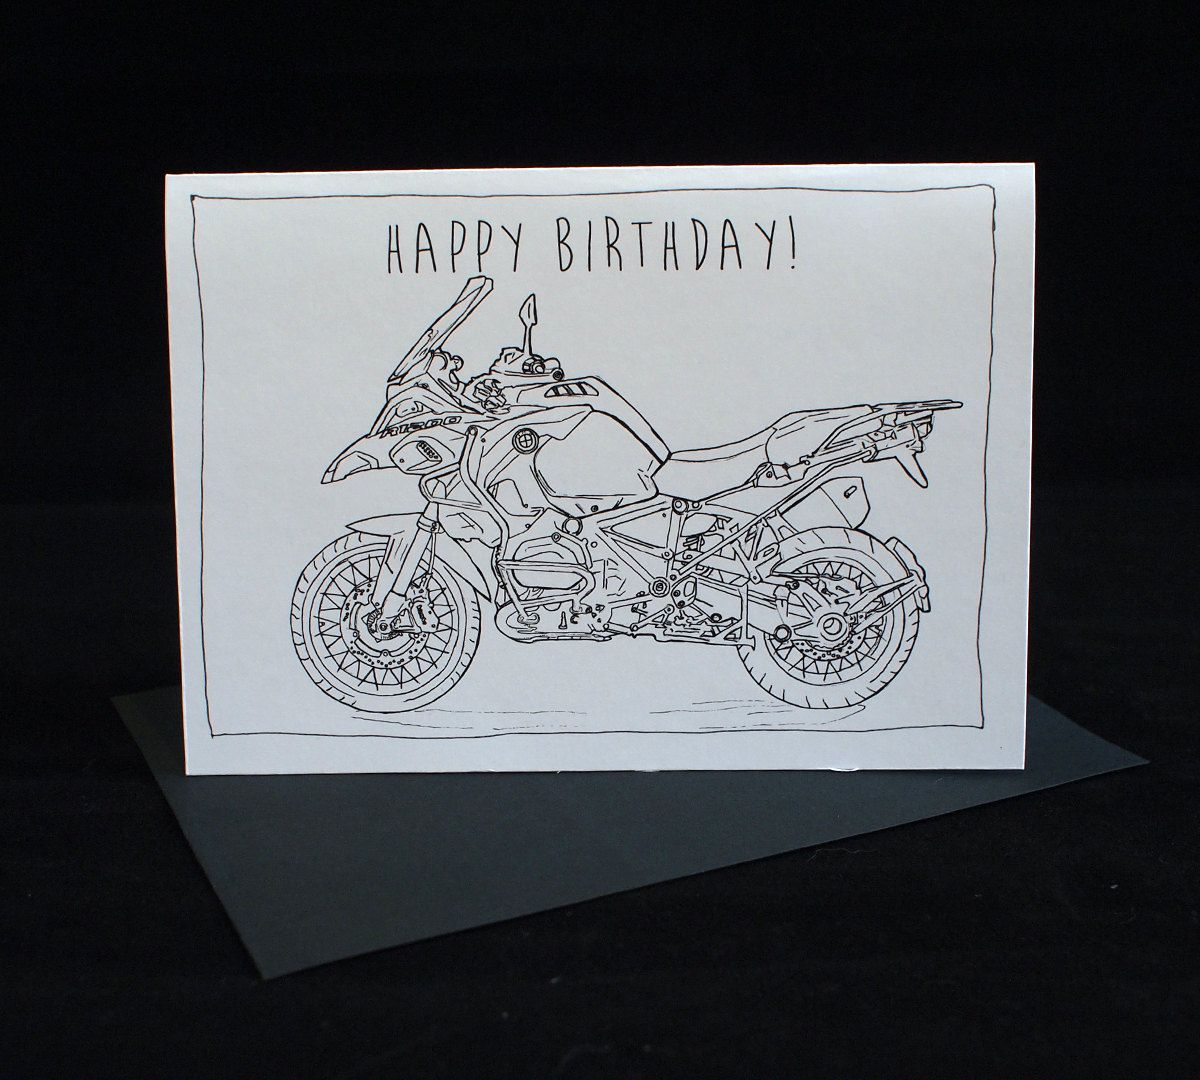 Motorcycle Birthday Card Vespa Scooter A6 6 x 4 by DailyBikers – Where Can I Buy Birthday Cards